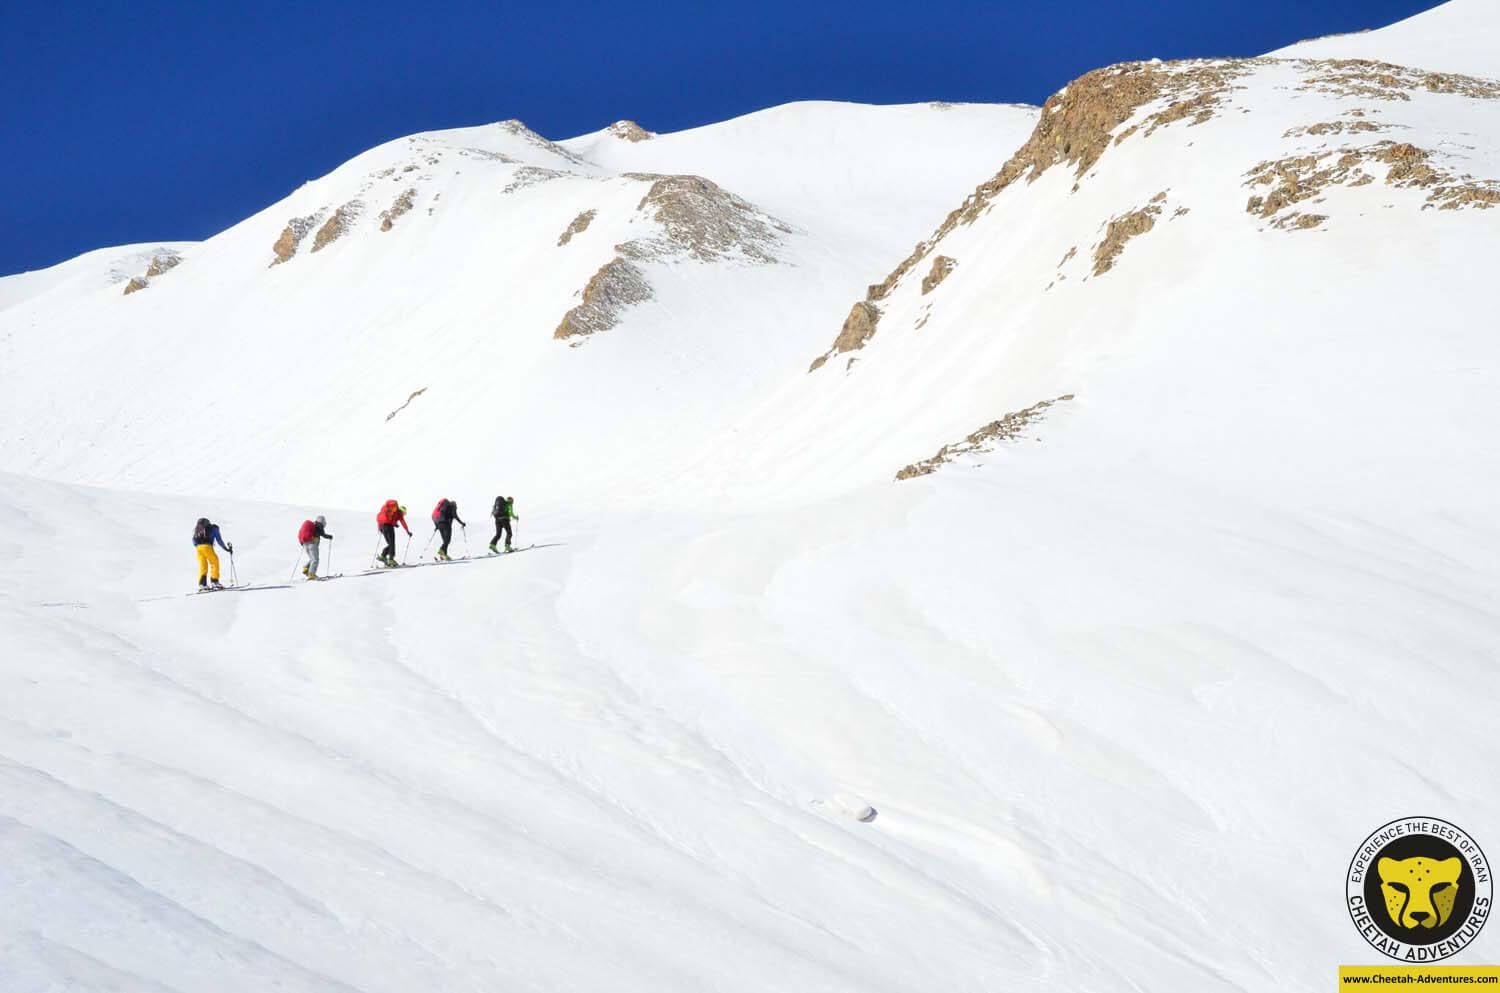 4 Ski touring To the summit of Doberar Peak (4250m), Damavand Ski tour